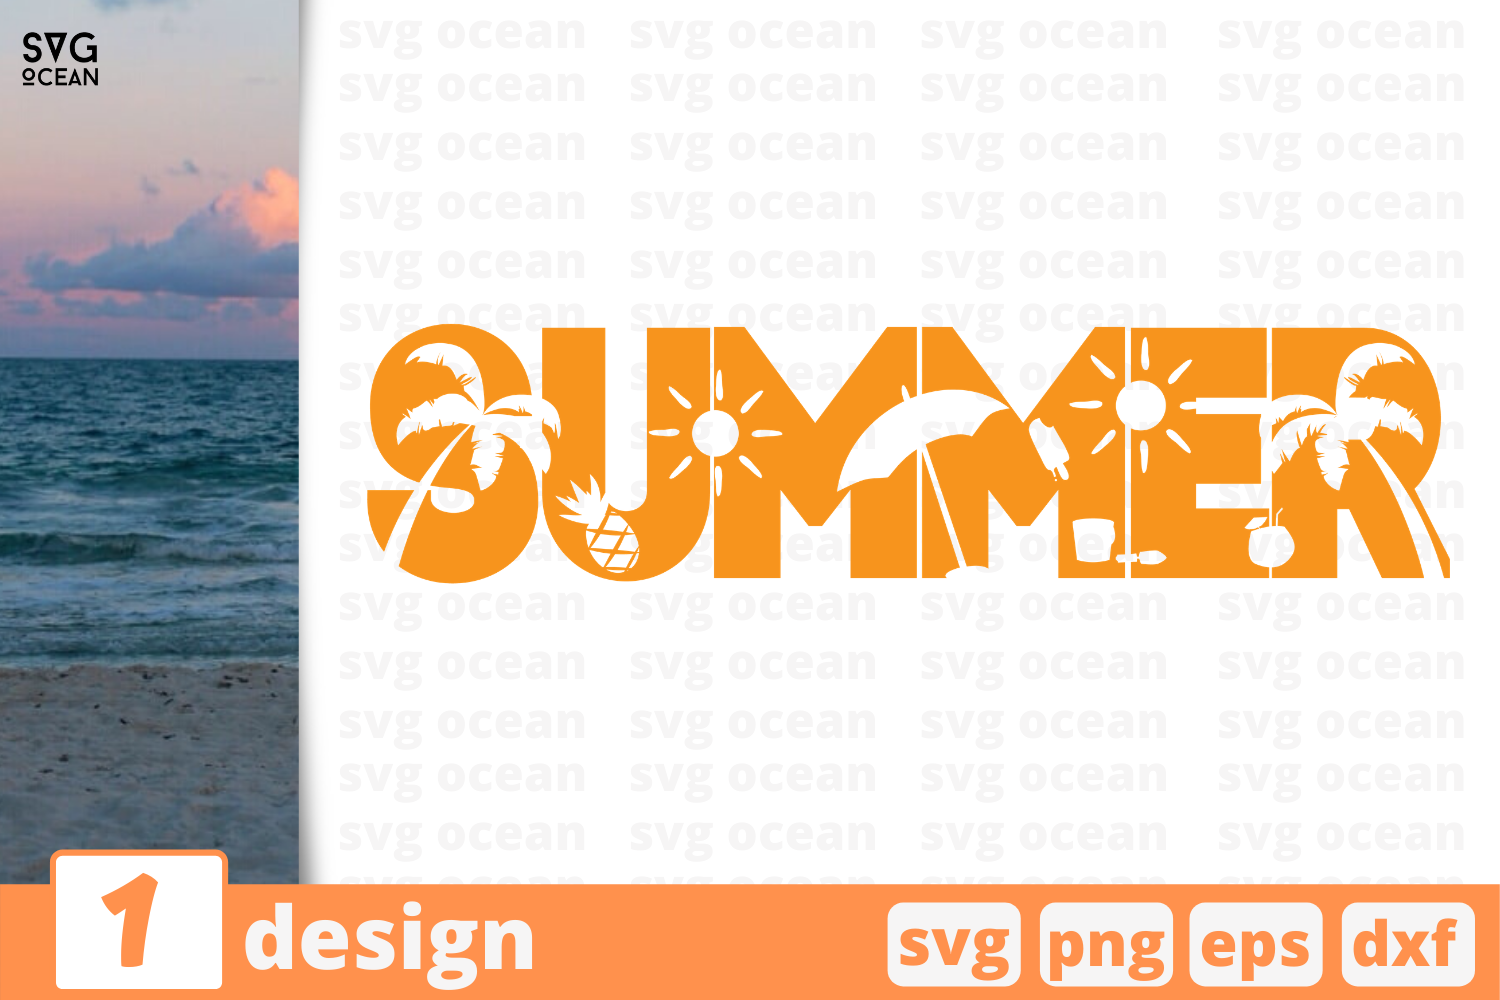 Download Free 1 Summer Svg Bundle Summer Cricut Svg Graphic By Svgocean Creative Fabrica for Cricut Explore, Silhouette and other cutting machines.